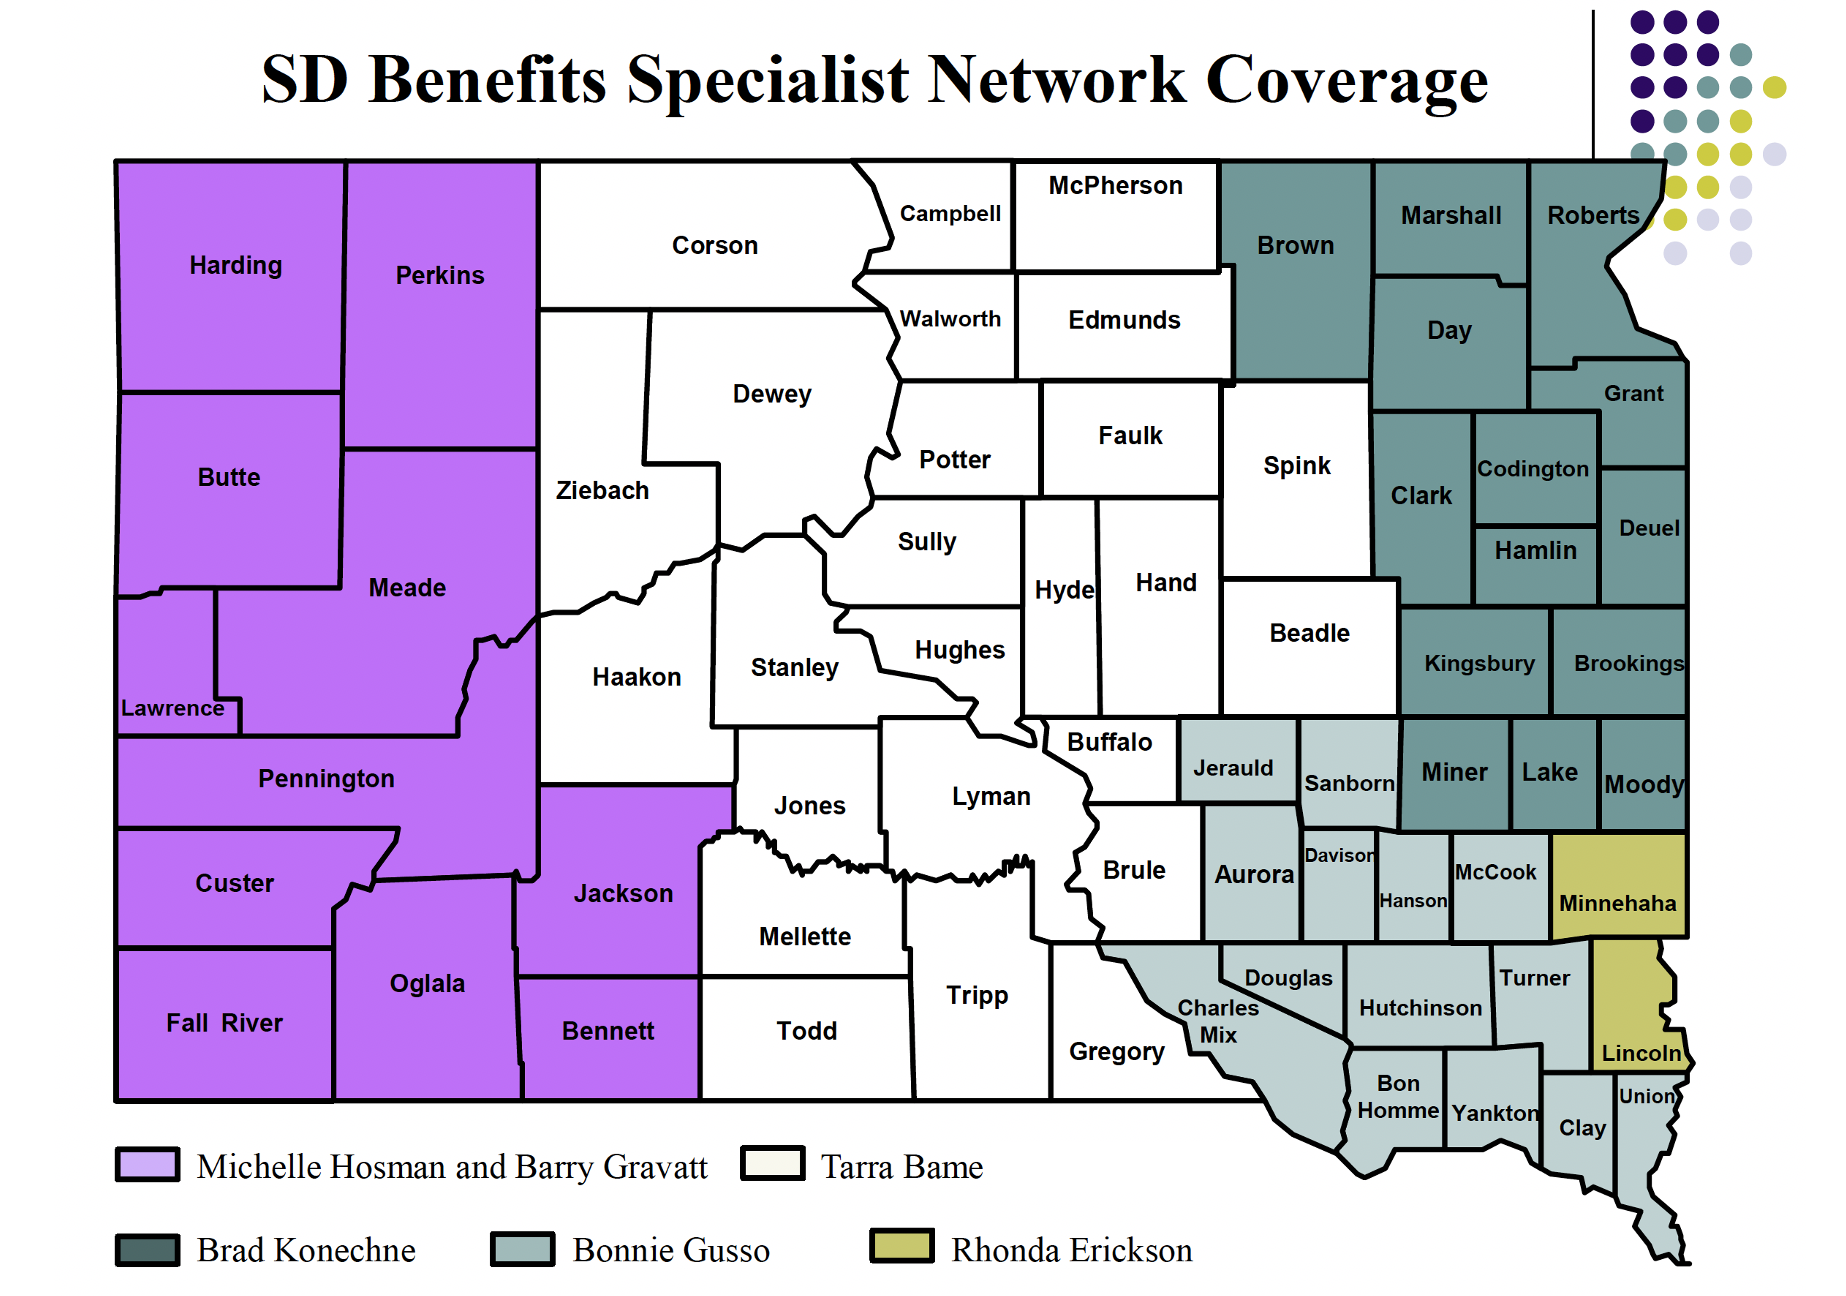 SDBSN Map showing Benefits Specialist coverage areas